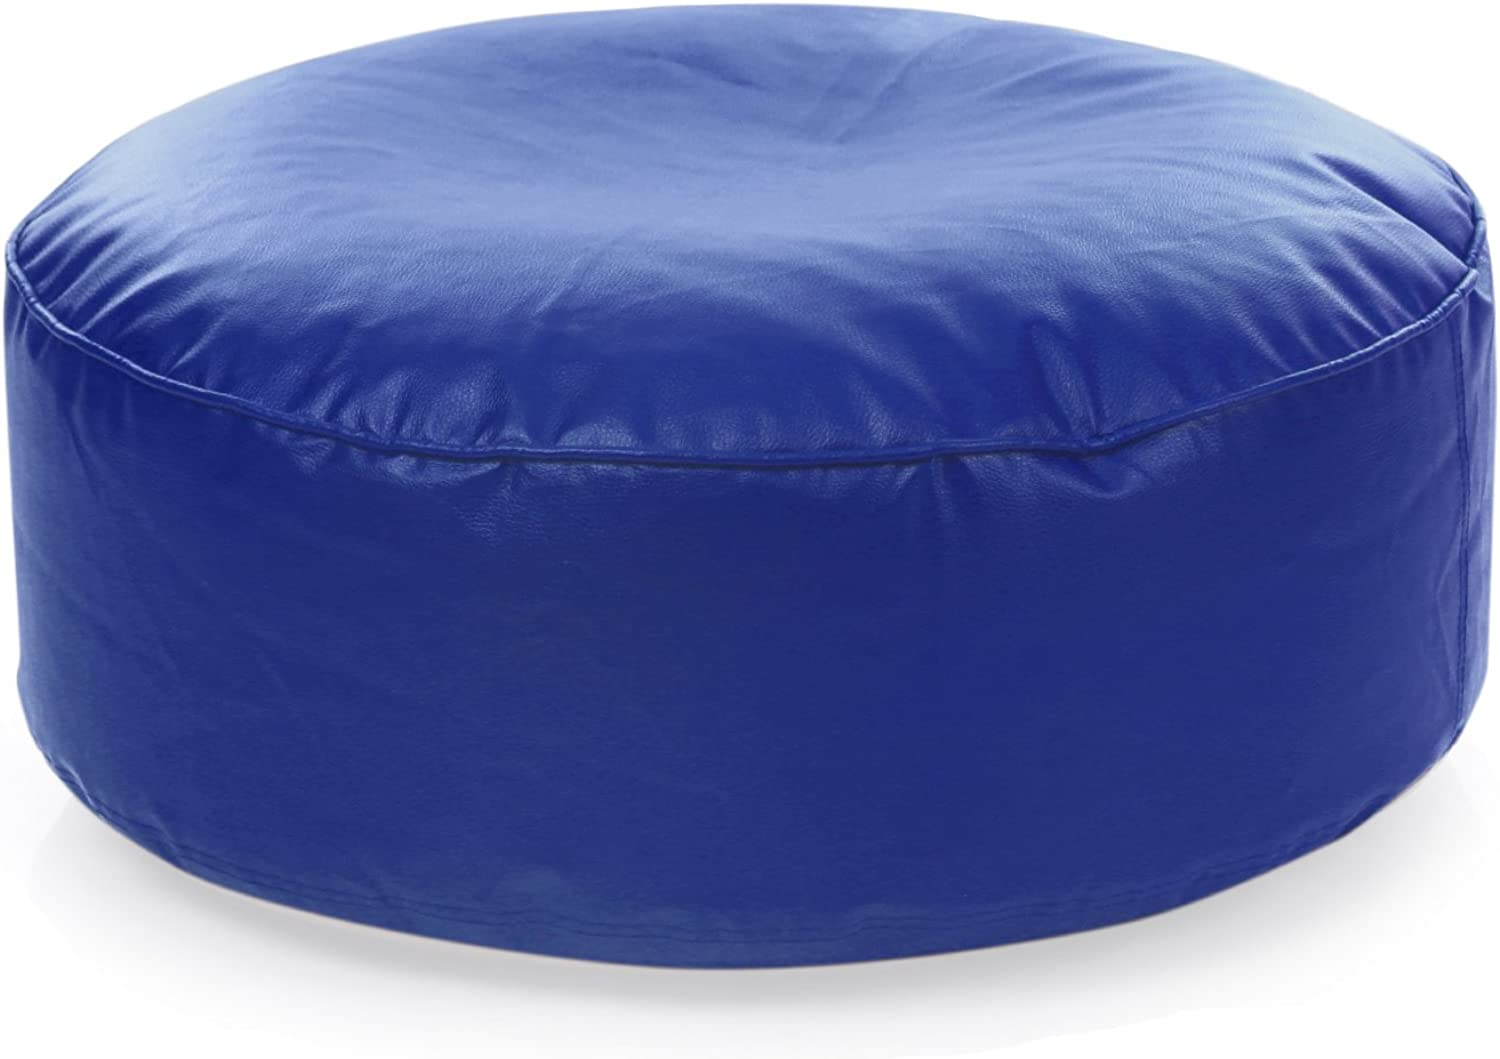 Style Homez Classic Round Floor Cushion L size Royal bluee color Cover Only